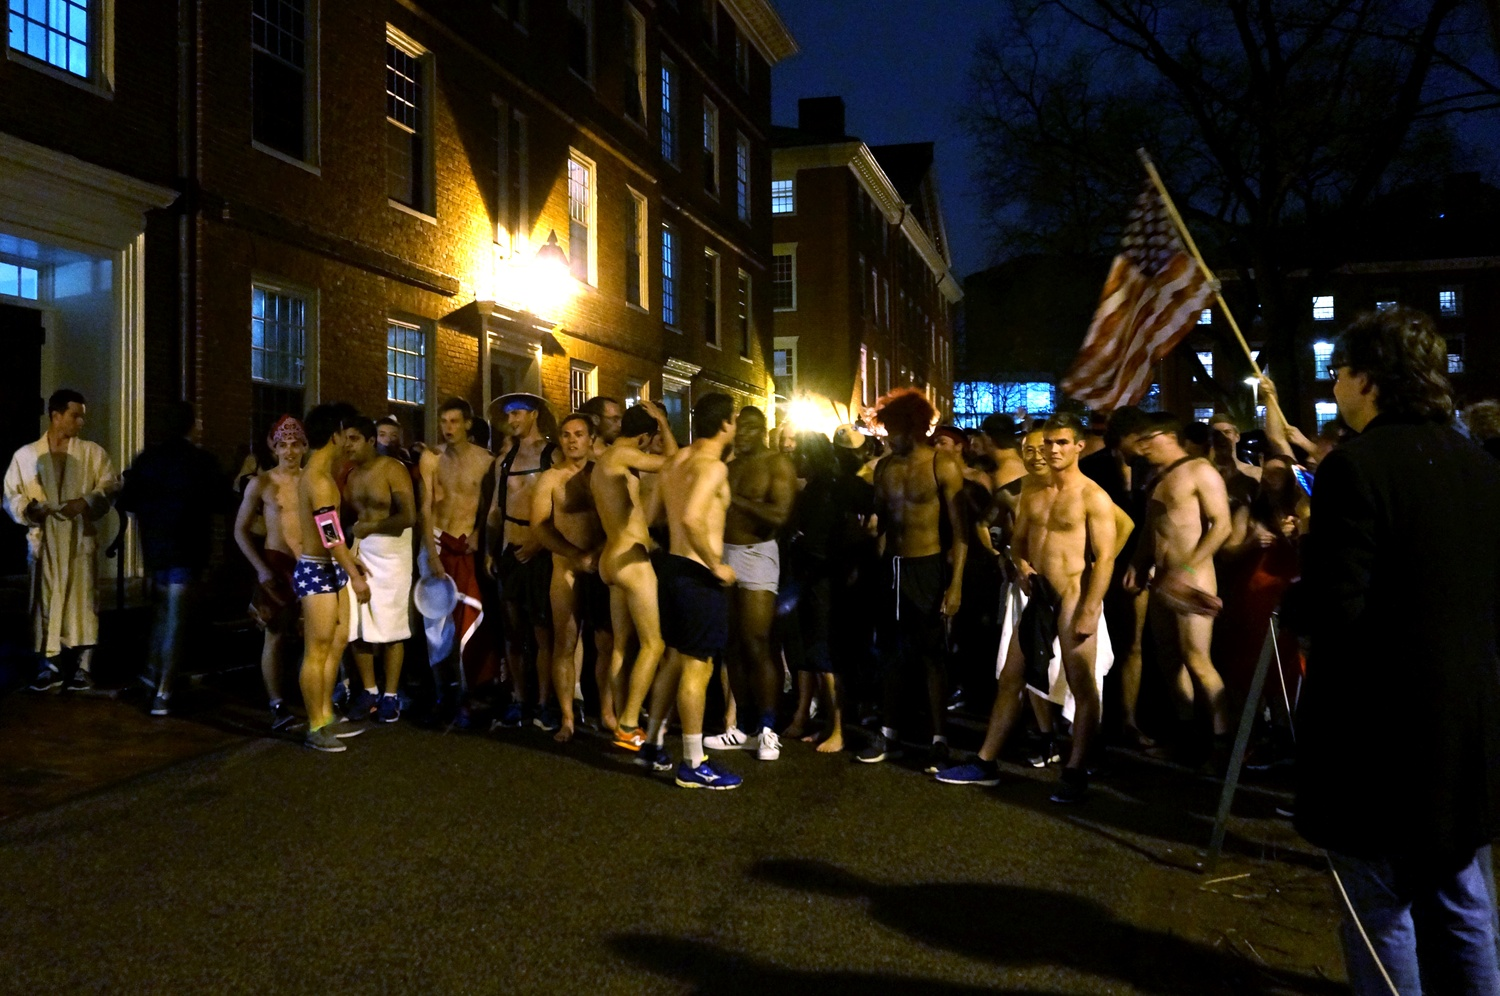 Students gather in Harvard Yard at midnight before finals period to relieve stress through a spring Primal Scream.